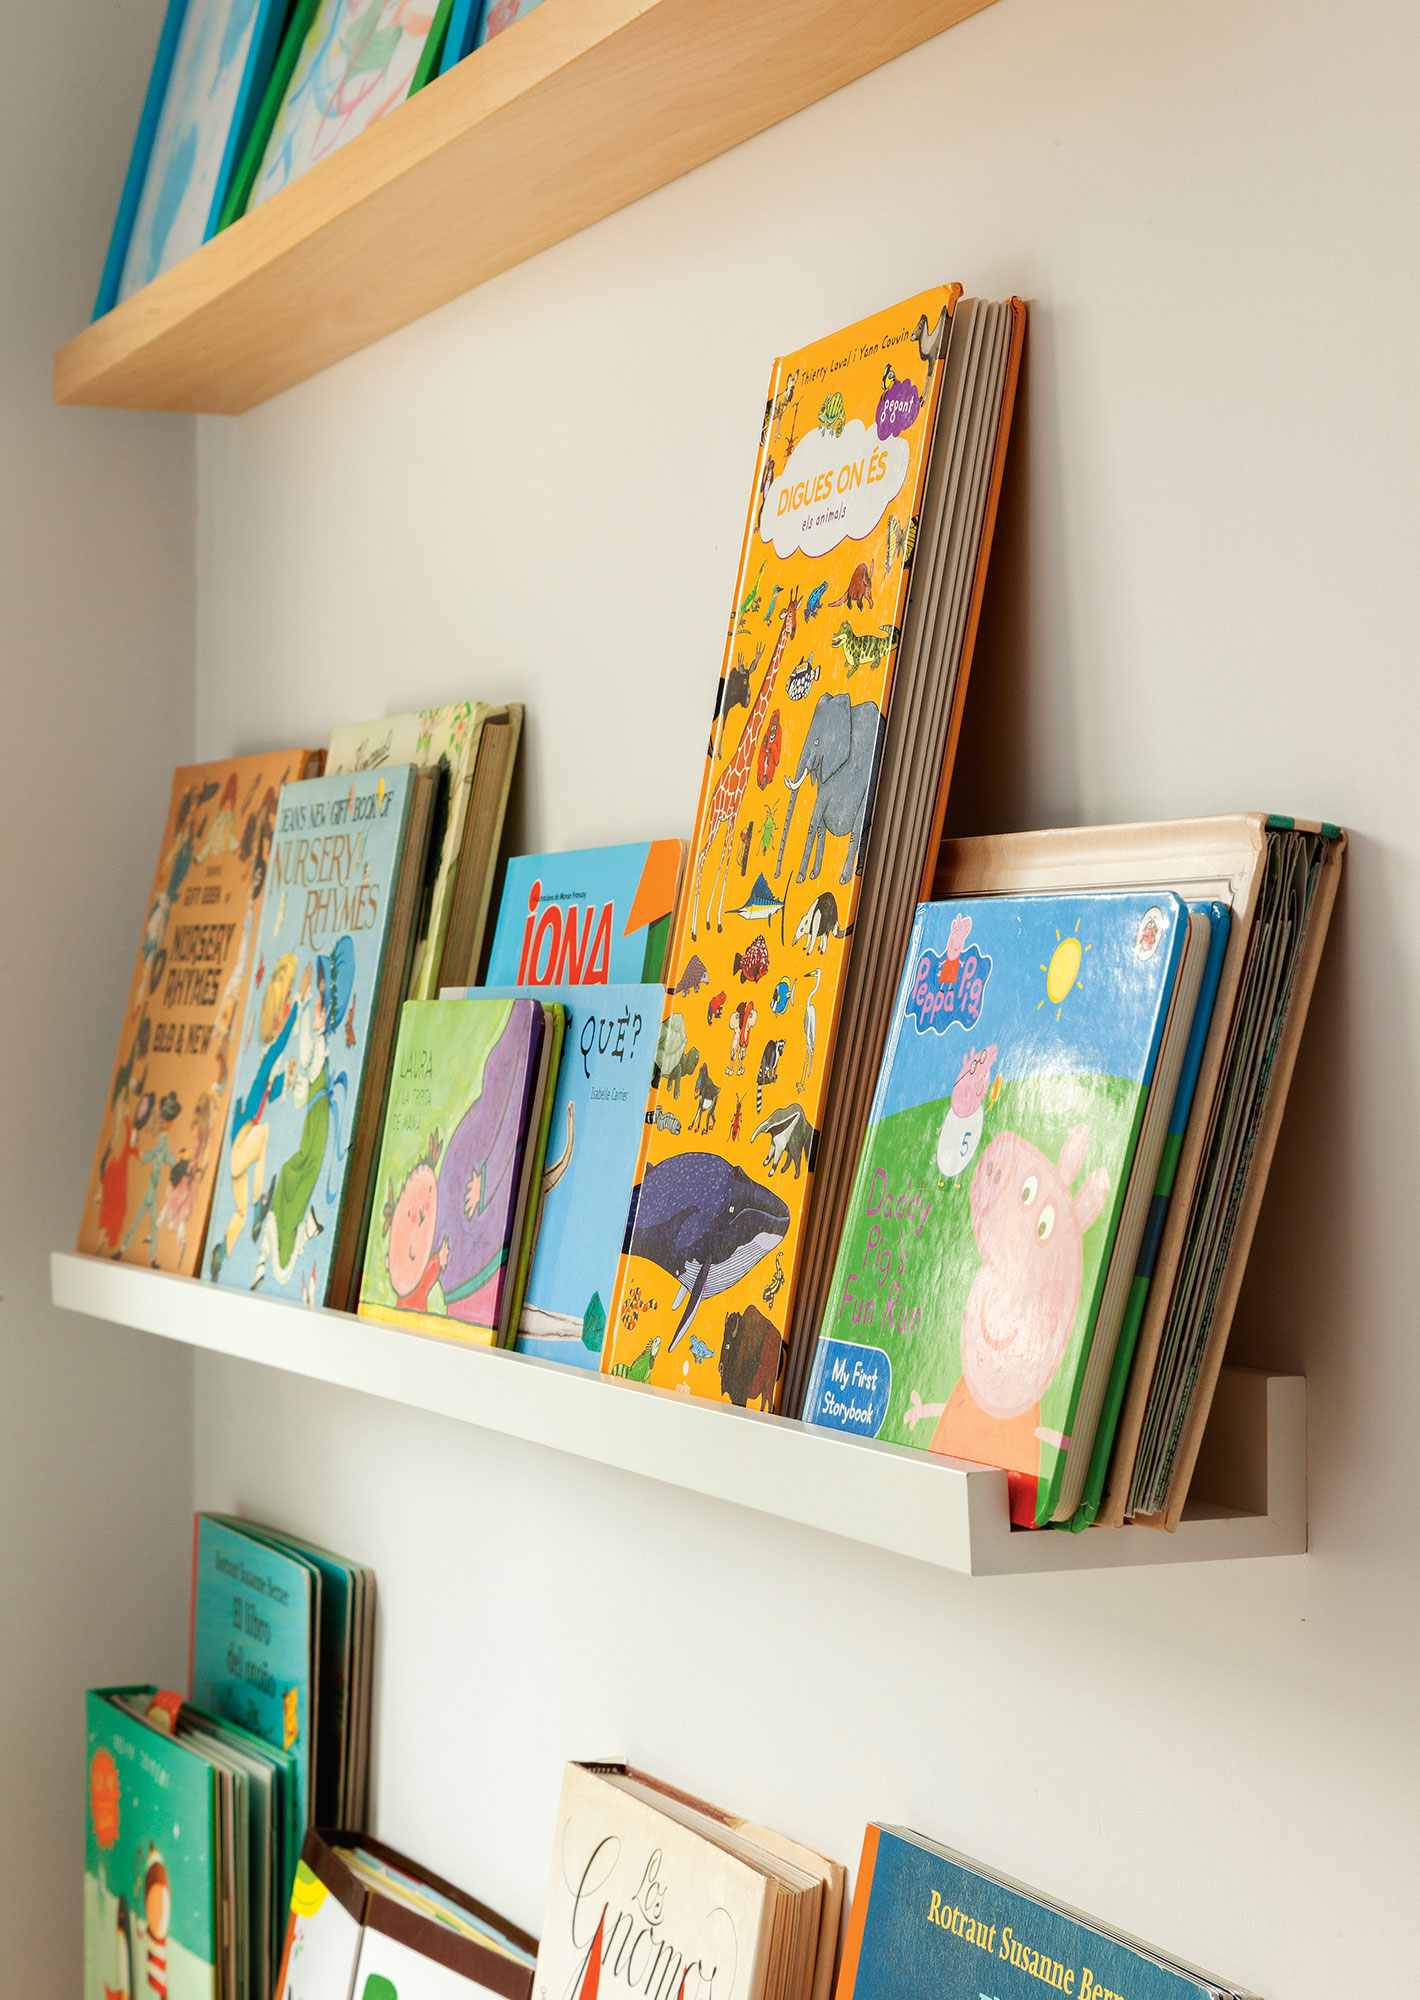 10 librer as pr cticas y decorativas para toda la casa for Mueble libreria infantil